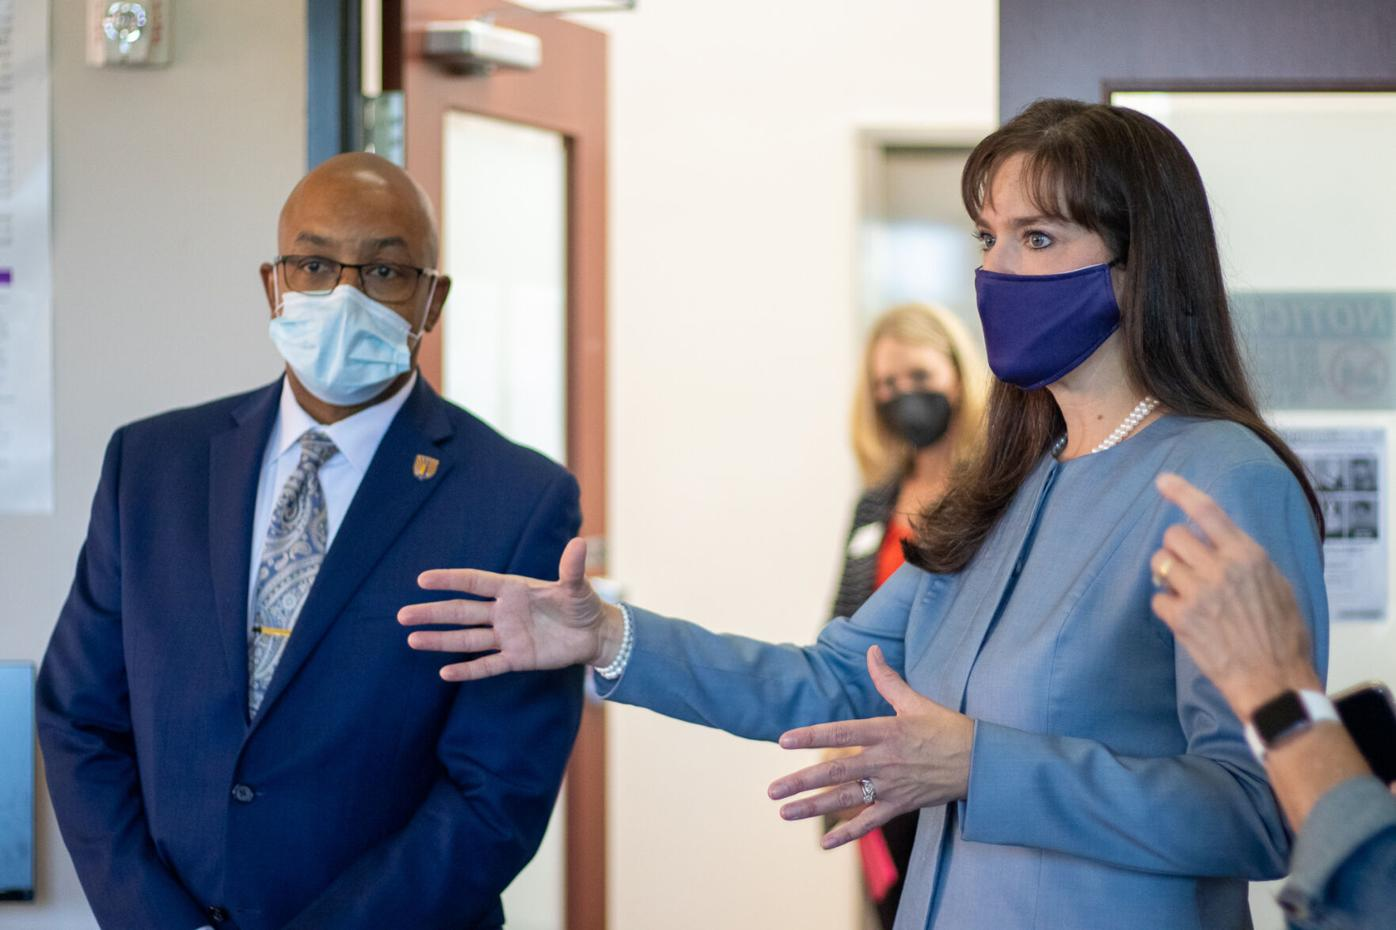 Lipscomb President Candice McQueen and Vice Provost for Health Affairs Quincy Byrdsong